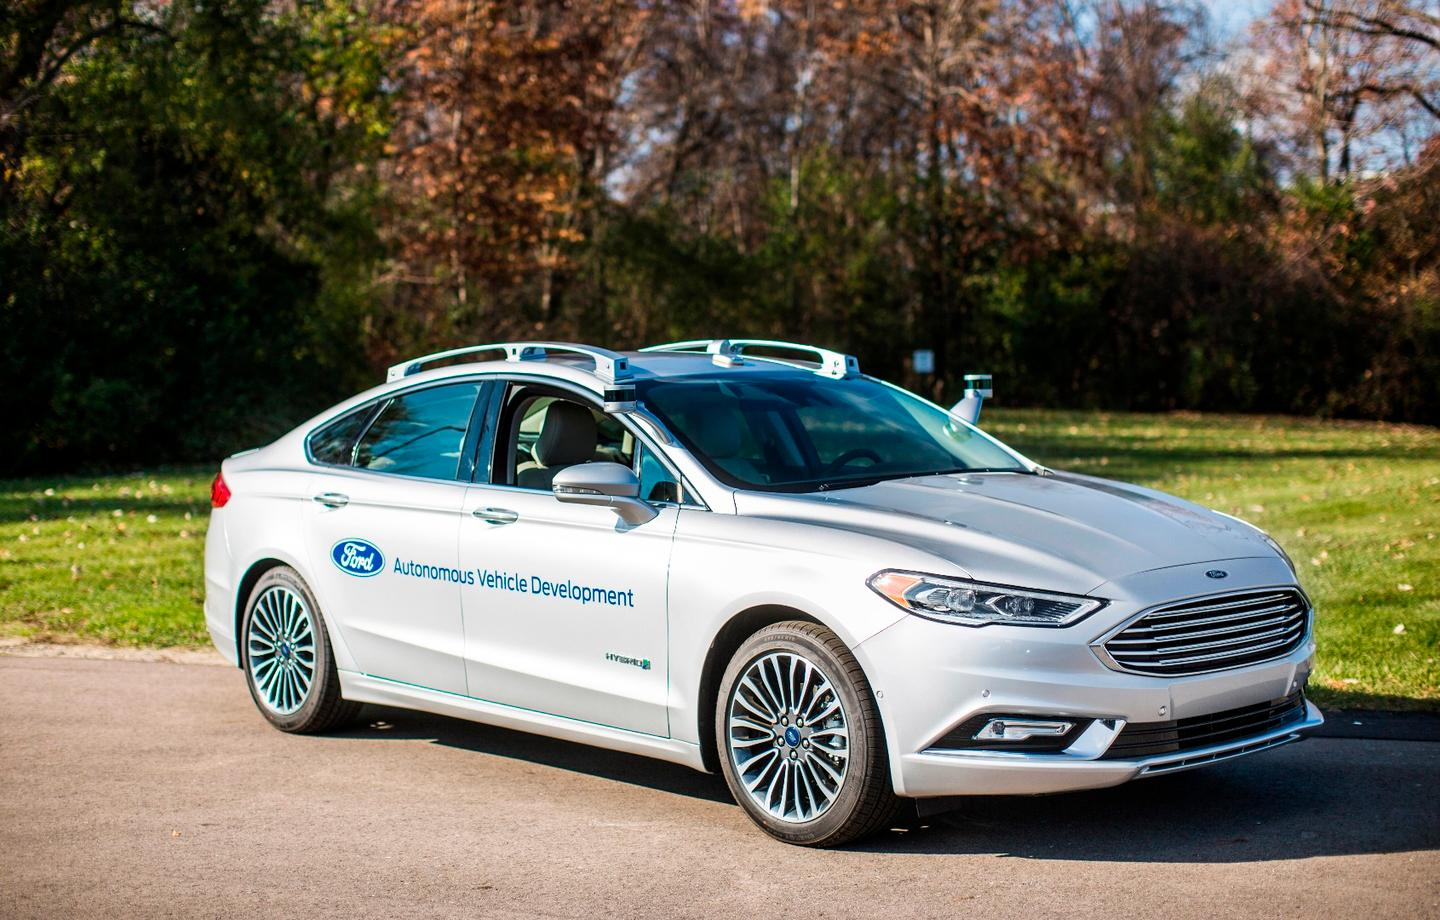 The new Ford Fusion Hybrid Autonomous Vehicle